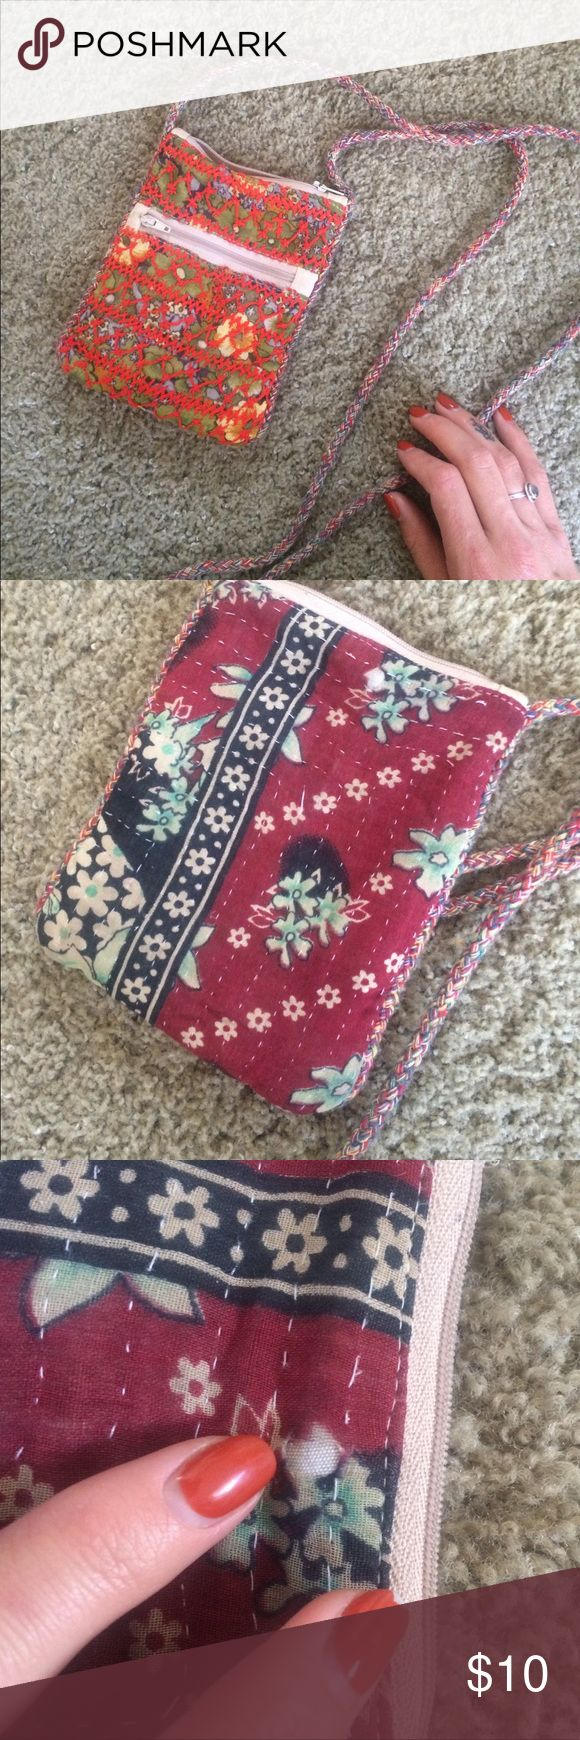 Adorable fabric small boho purse Bought at world market in san diego, which is like a bohemian market home decor store. Amazing bag, zippers work great, my finger shows the small hole. Stap is about 2 feet long depending on how heavy, hits at hip, fits cards and big smartphone Free People Bags Mini Bags